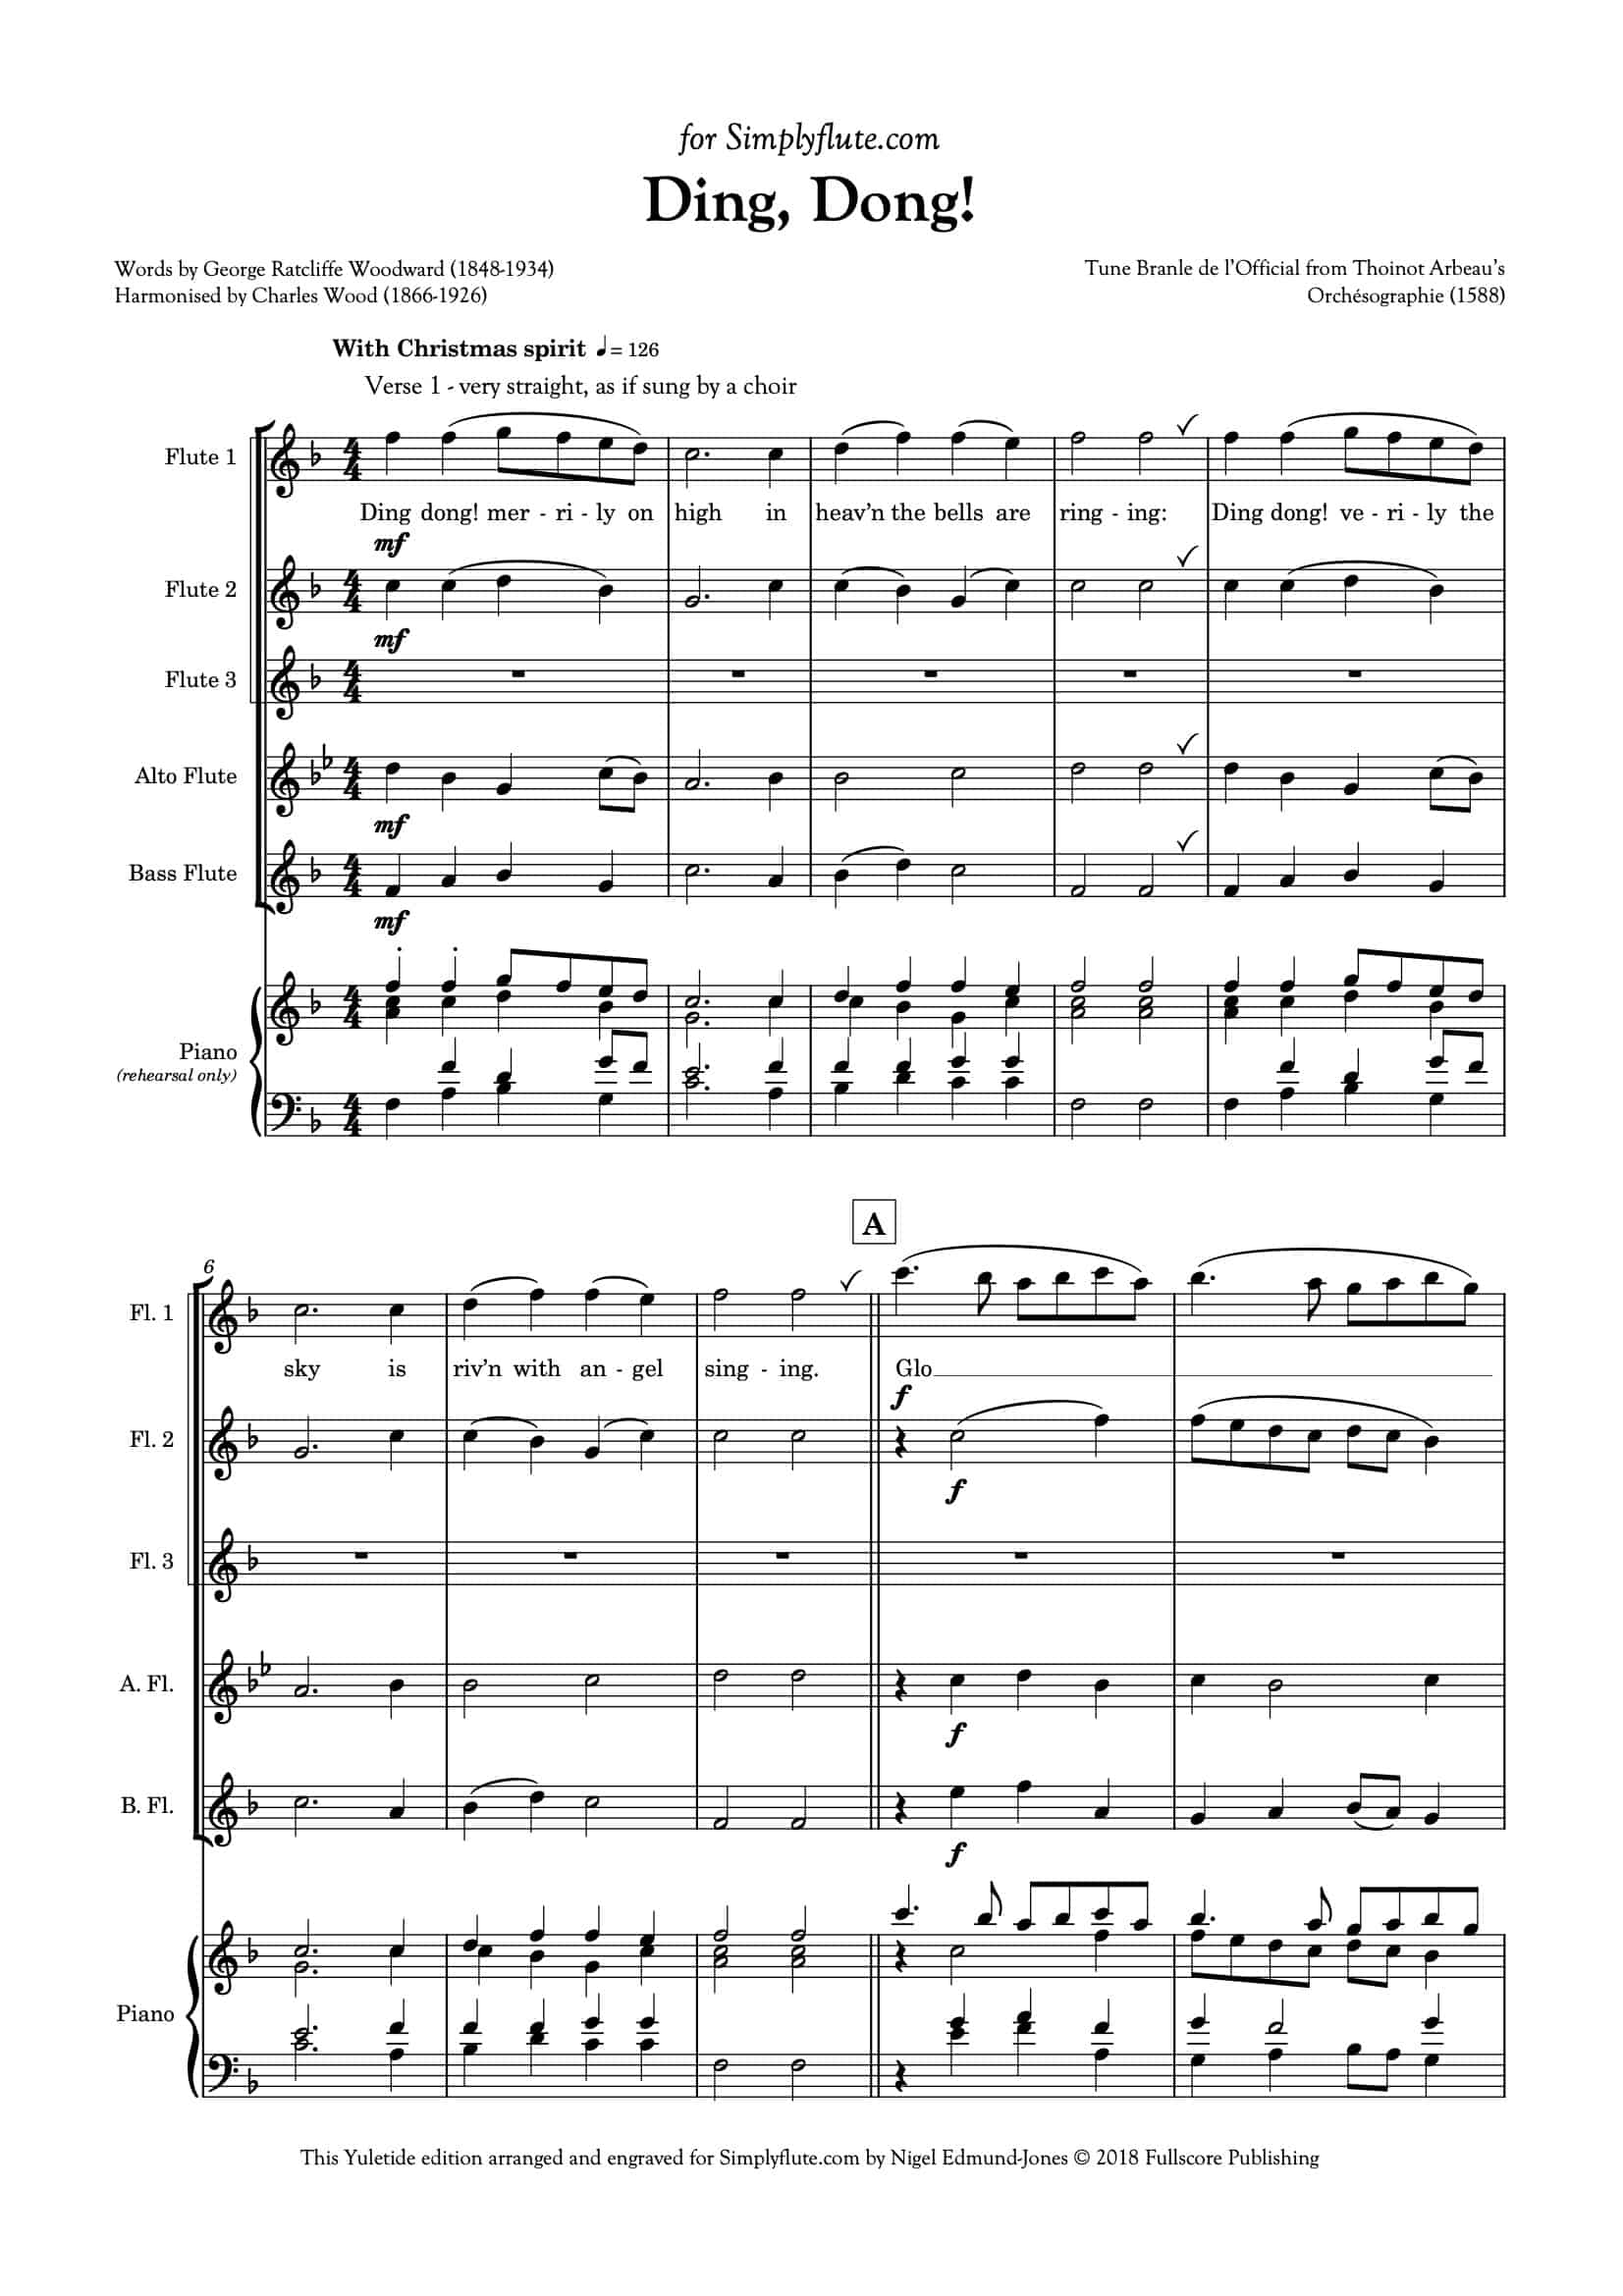 Ding Dong_for flute choir__Simply Flute-02